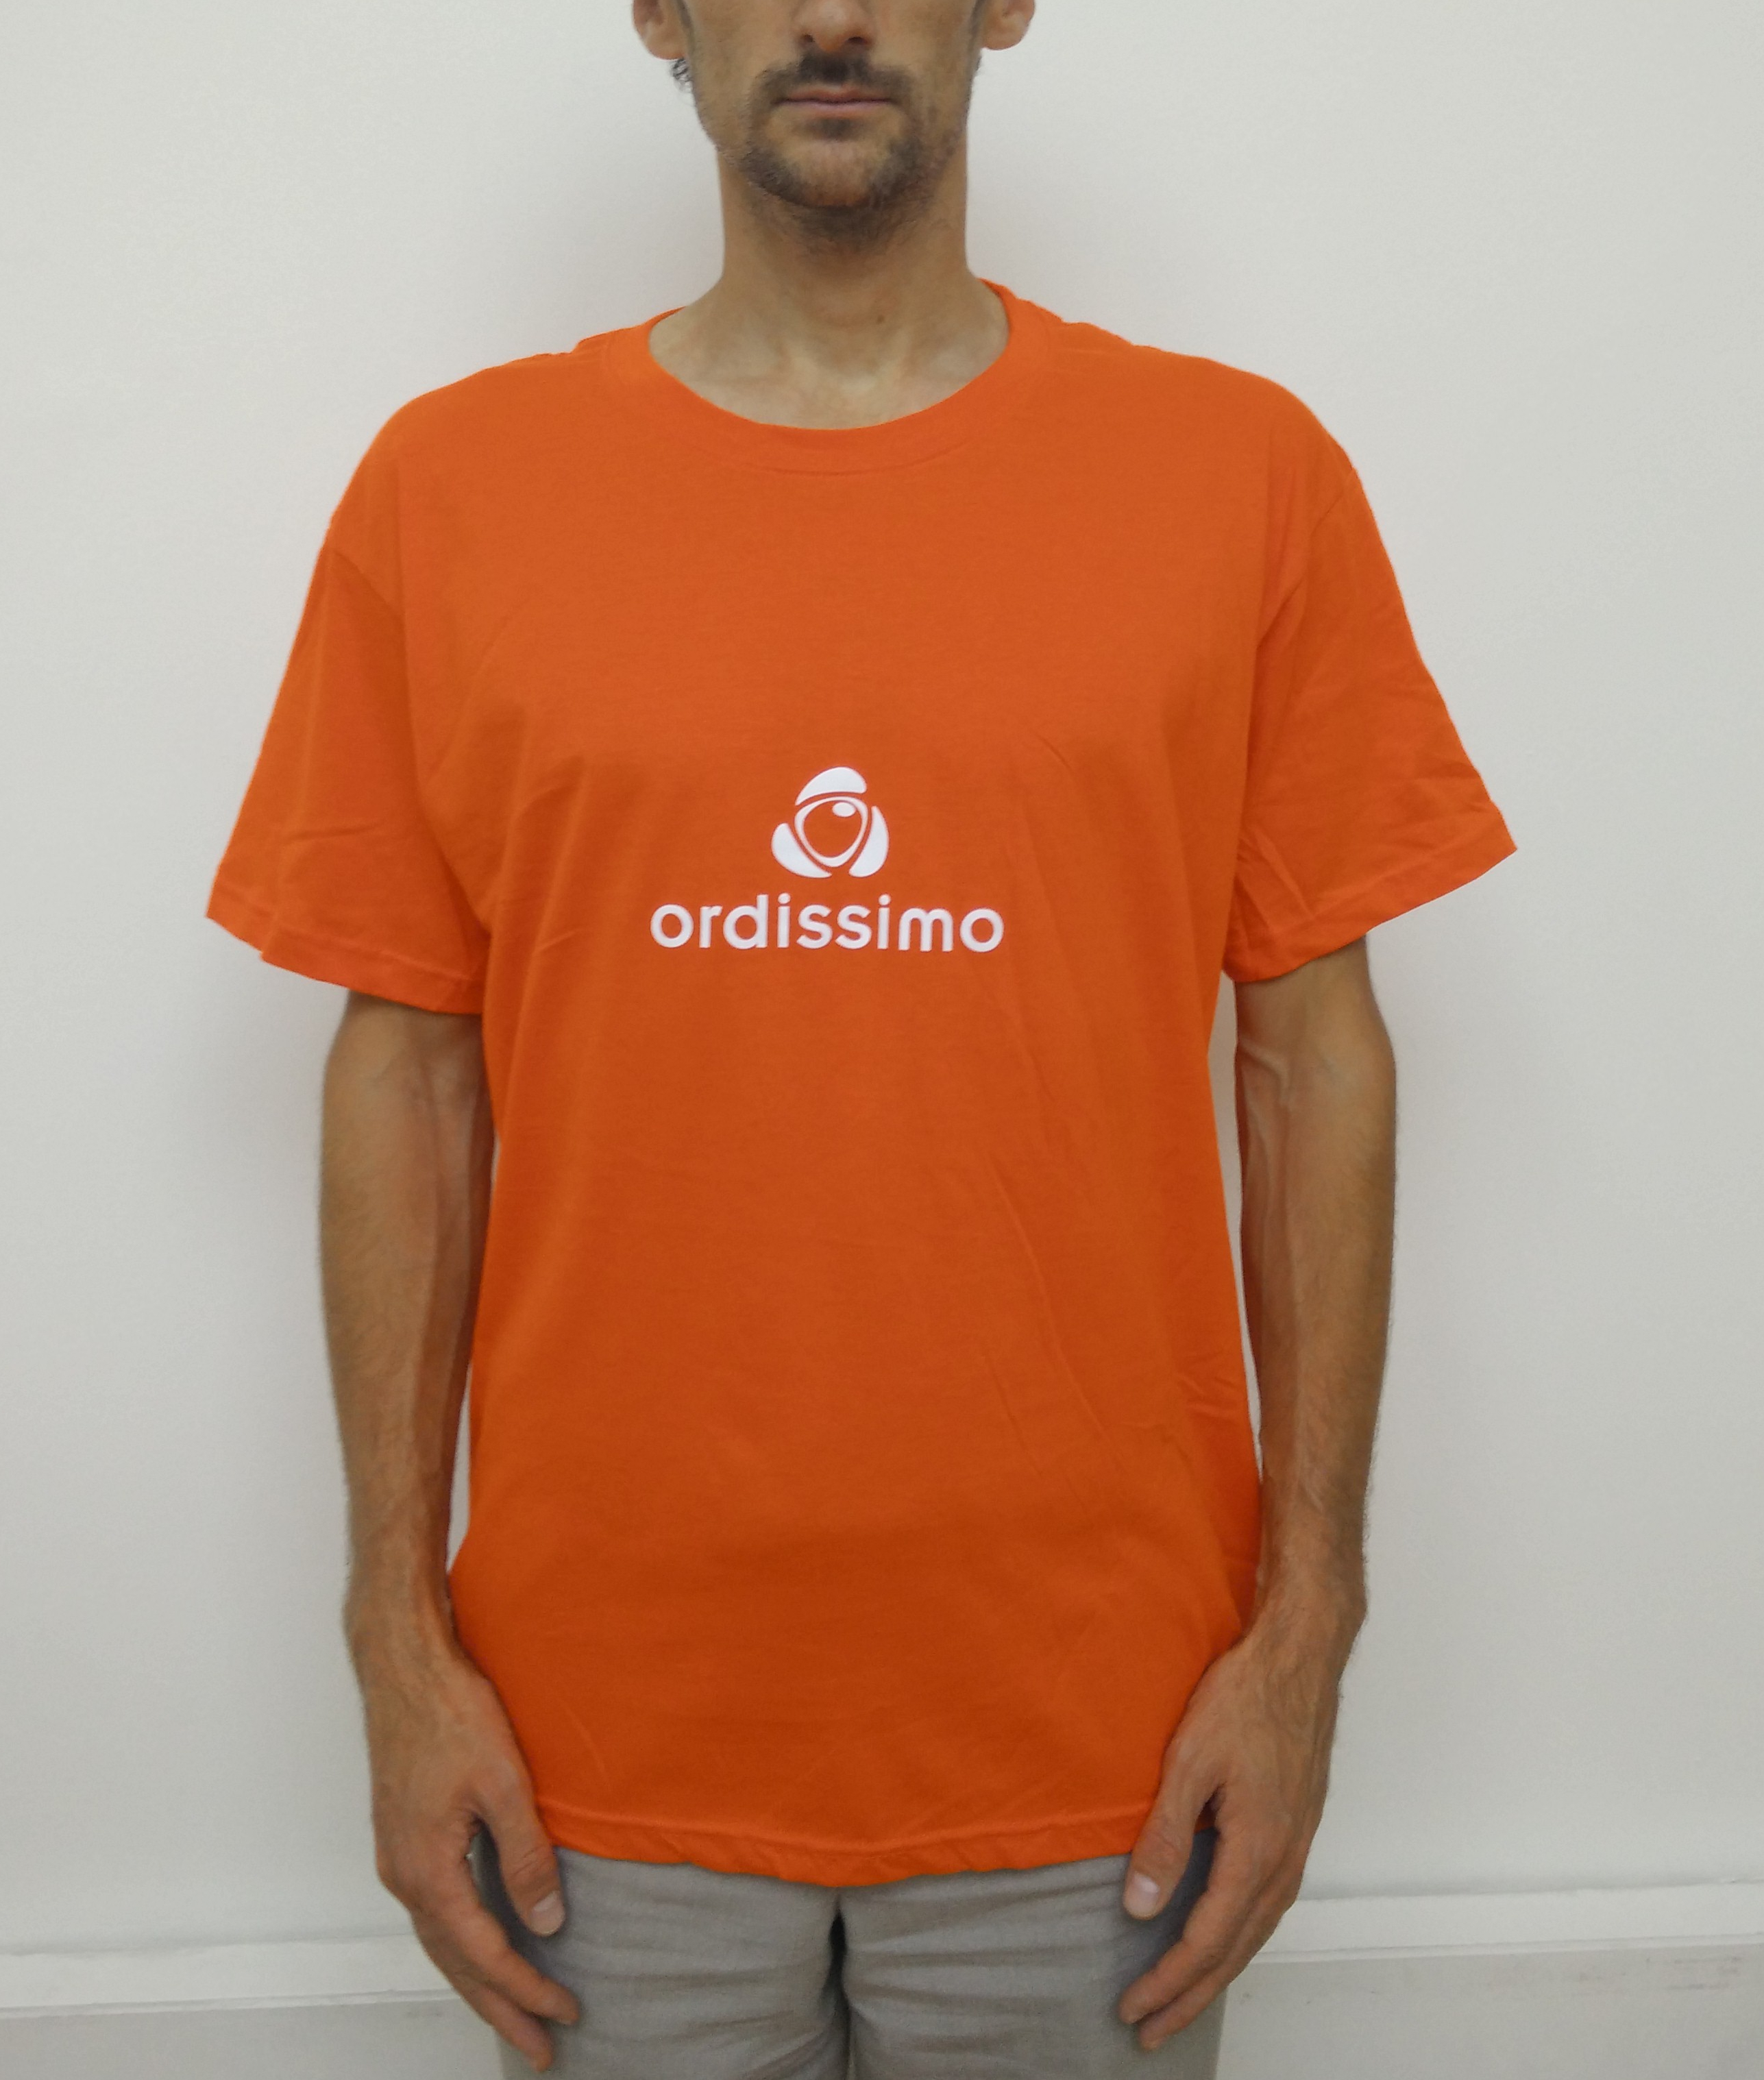 t-shirt orange face ordissimo